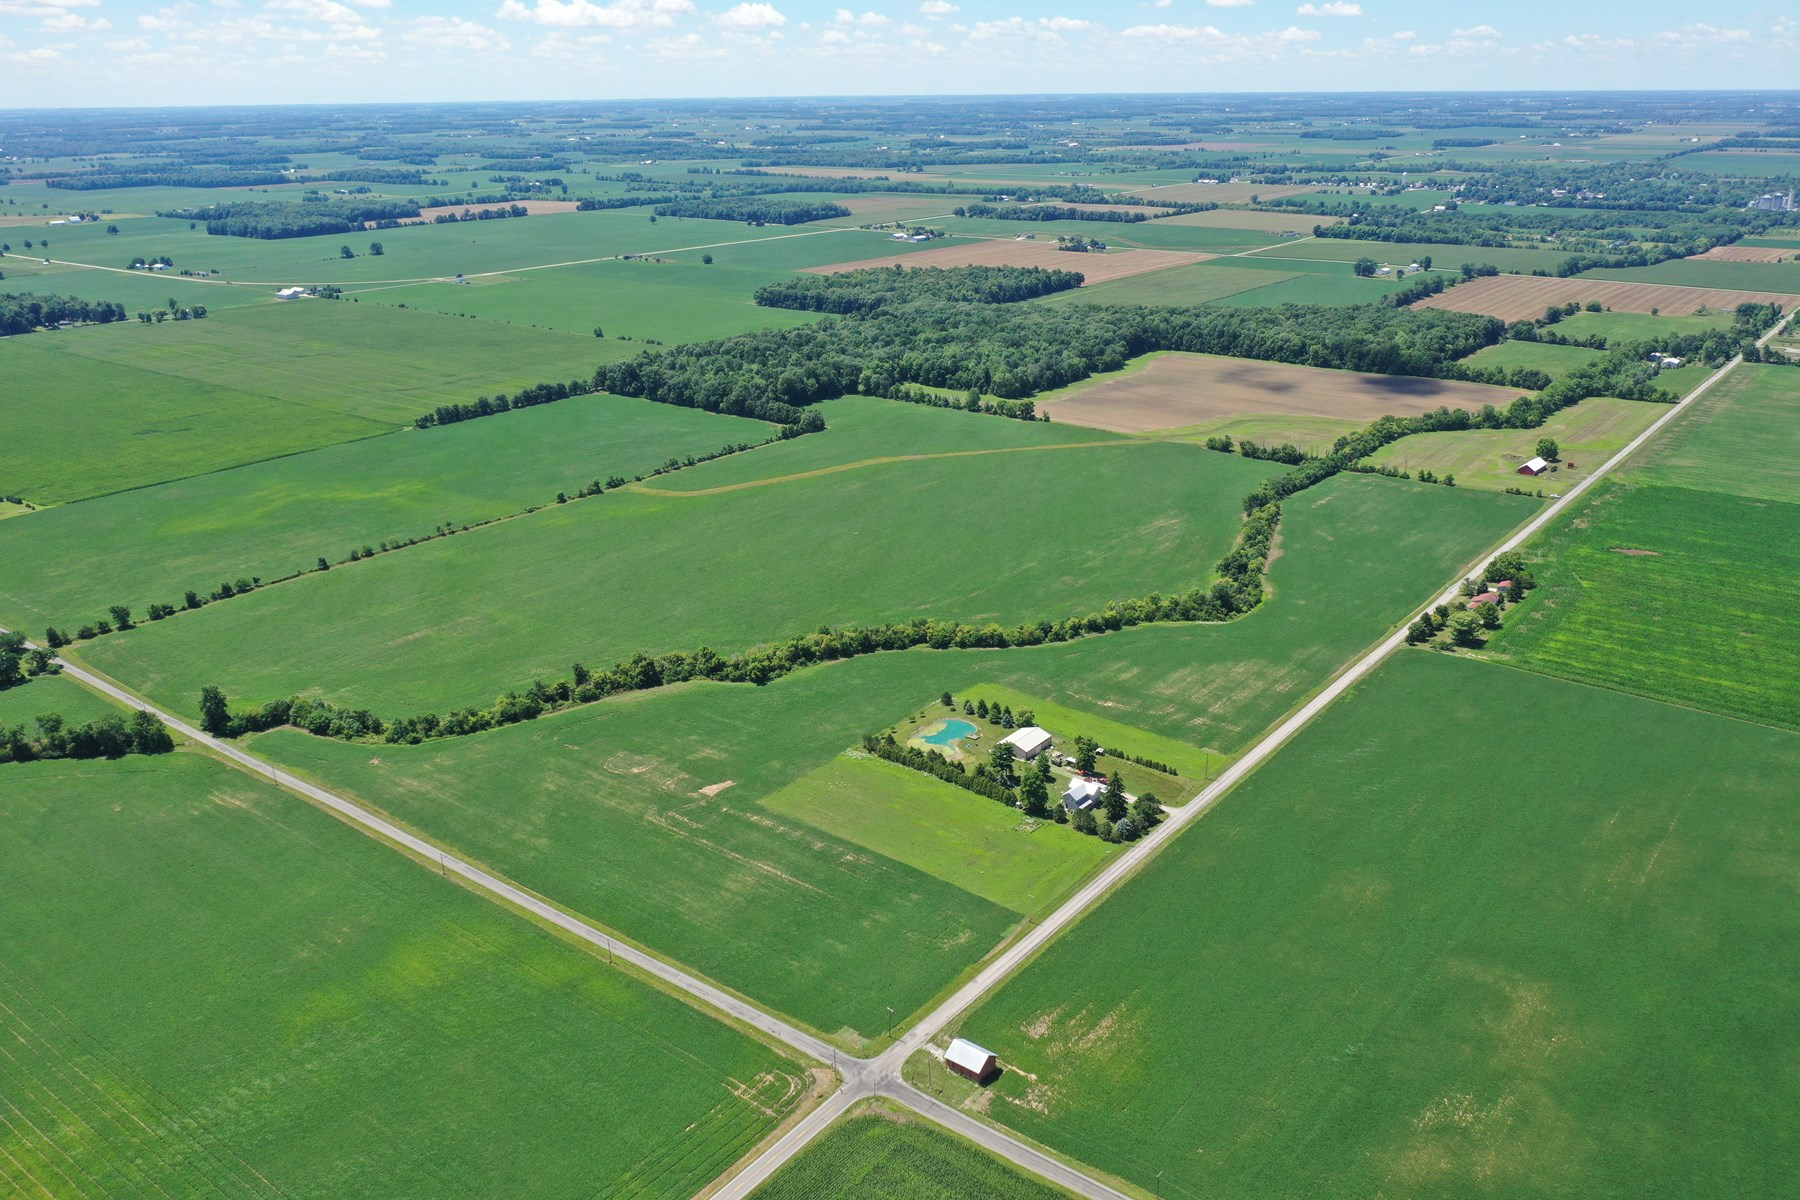 88 Acres +/- For Sale - Hancock County, Ohio